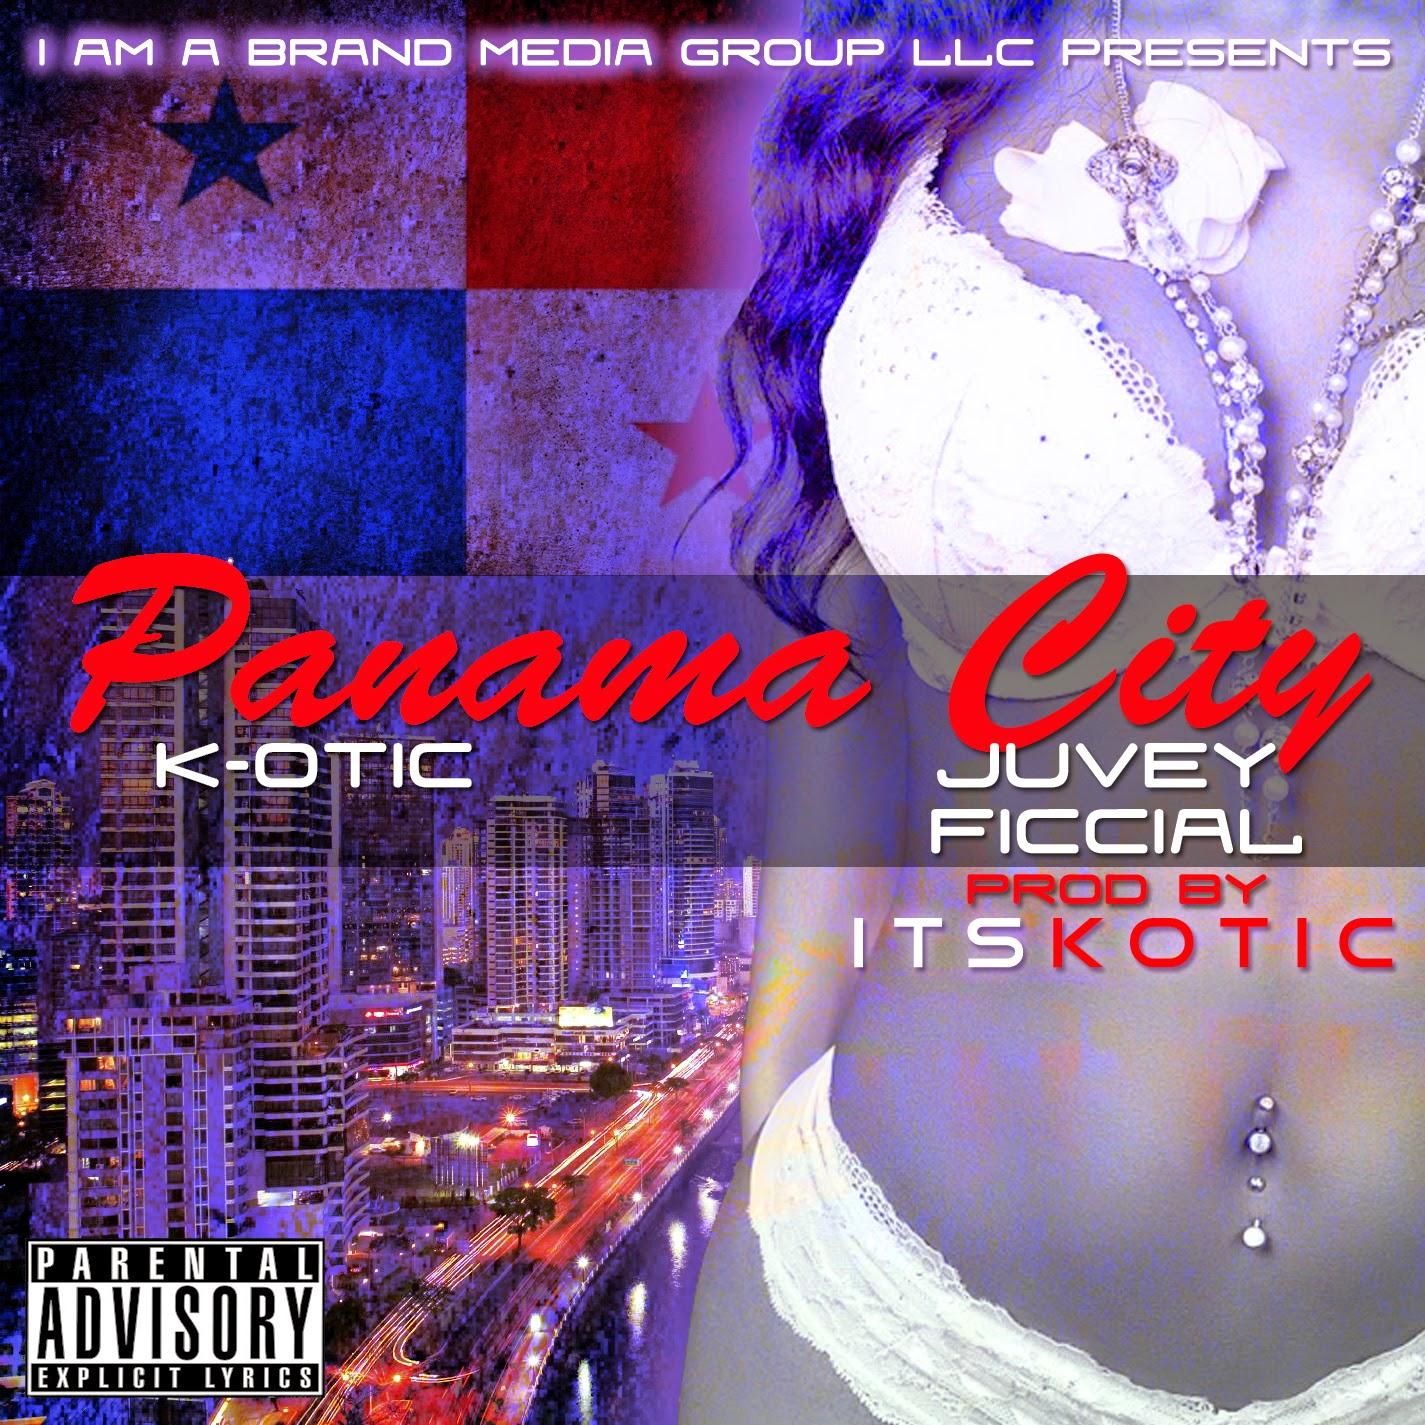 K-OTIC Panama City ft Juvey Ficcial itunes CD Cover image picture